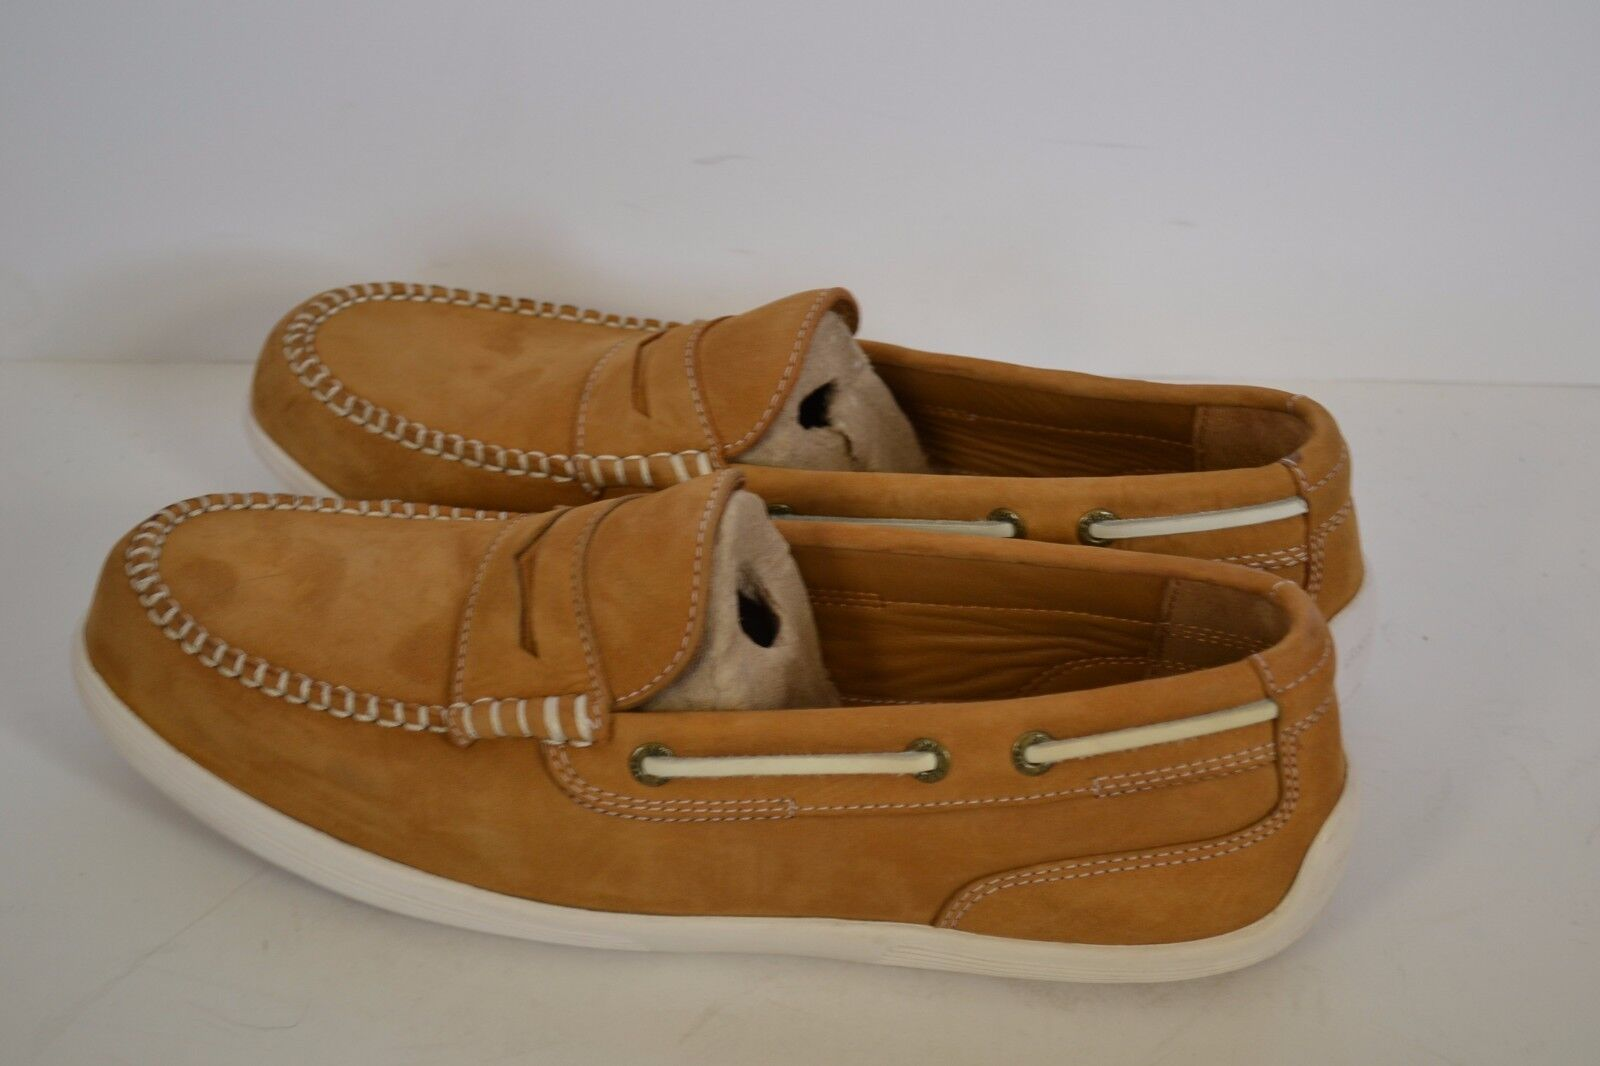 Sebago Nantucket Classic Uomo SIZE 9 M LEATHER TAN LOAFERS mocs boat shoes